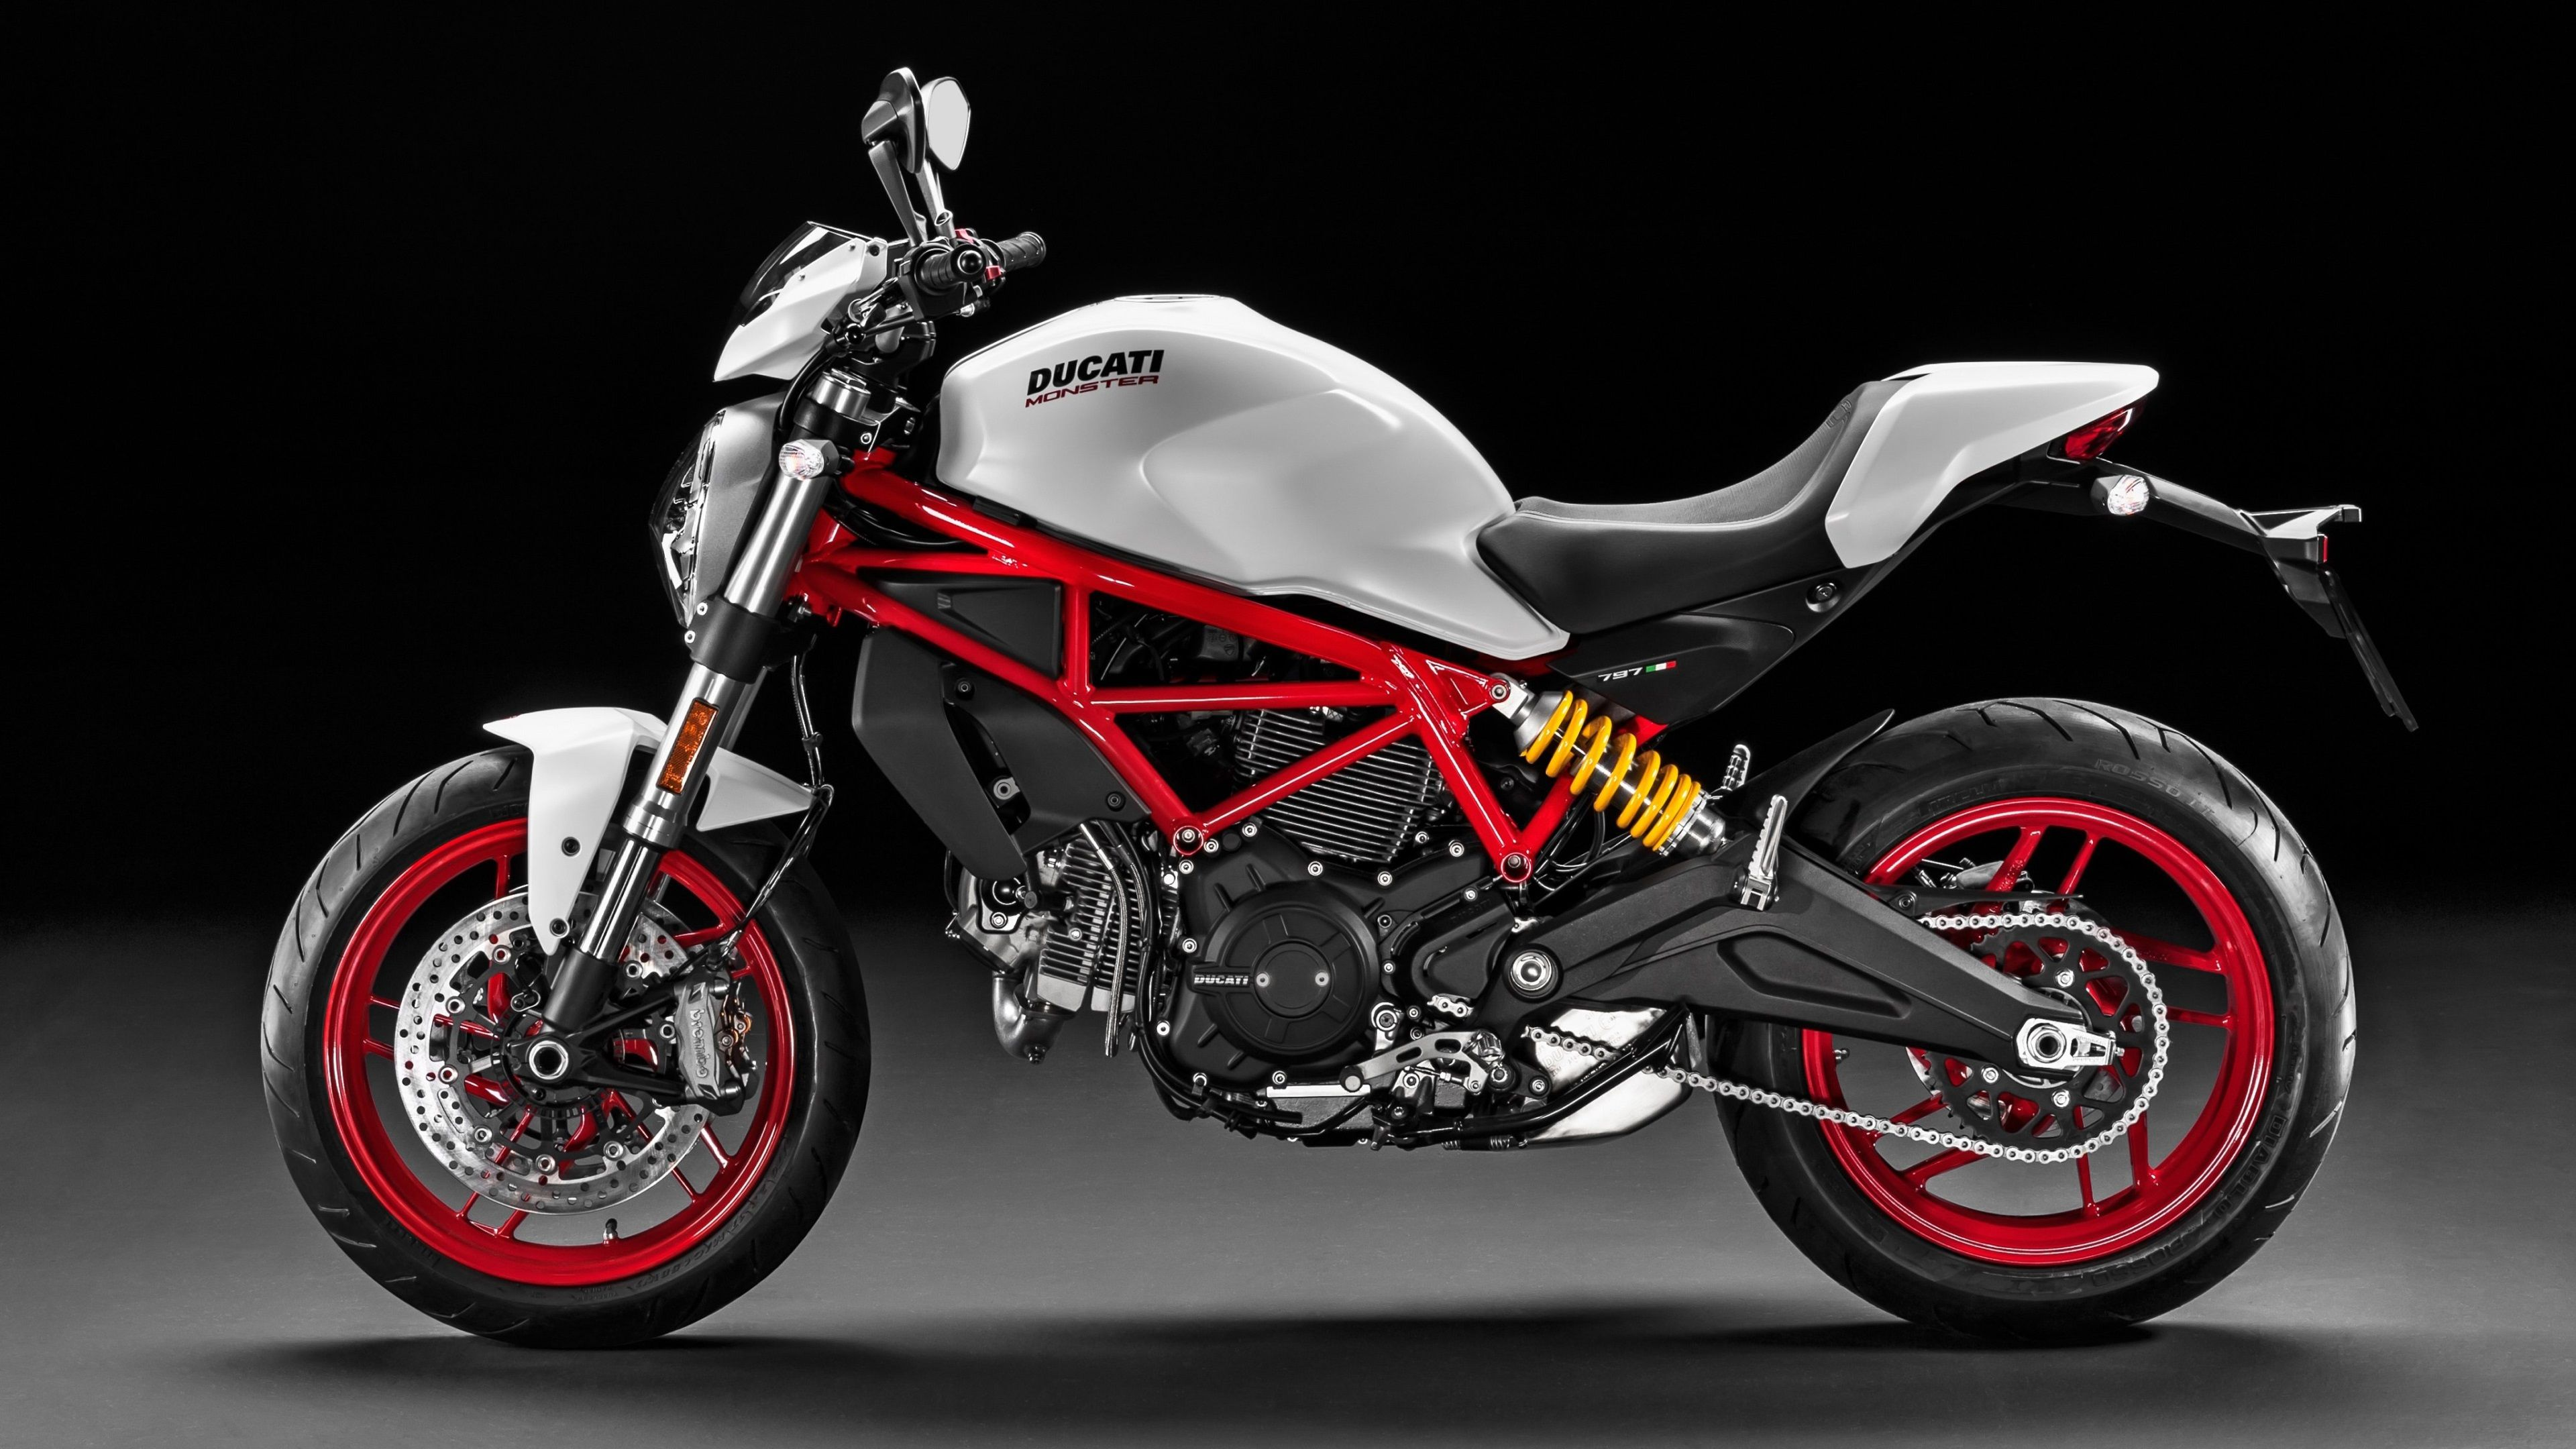 3840x2160 Ducati Monster 797 Plus 4k Hd Pic